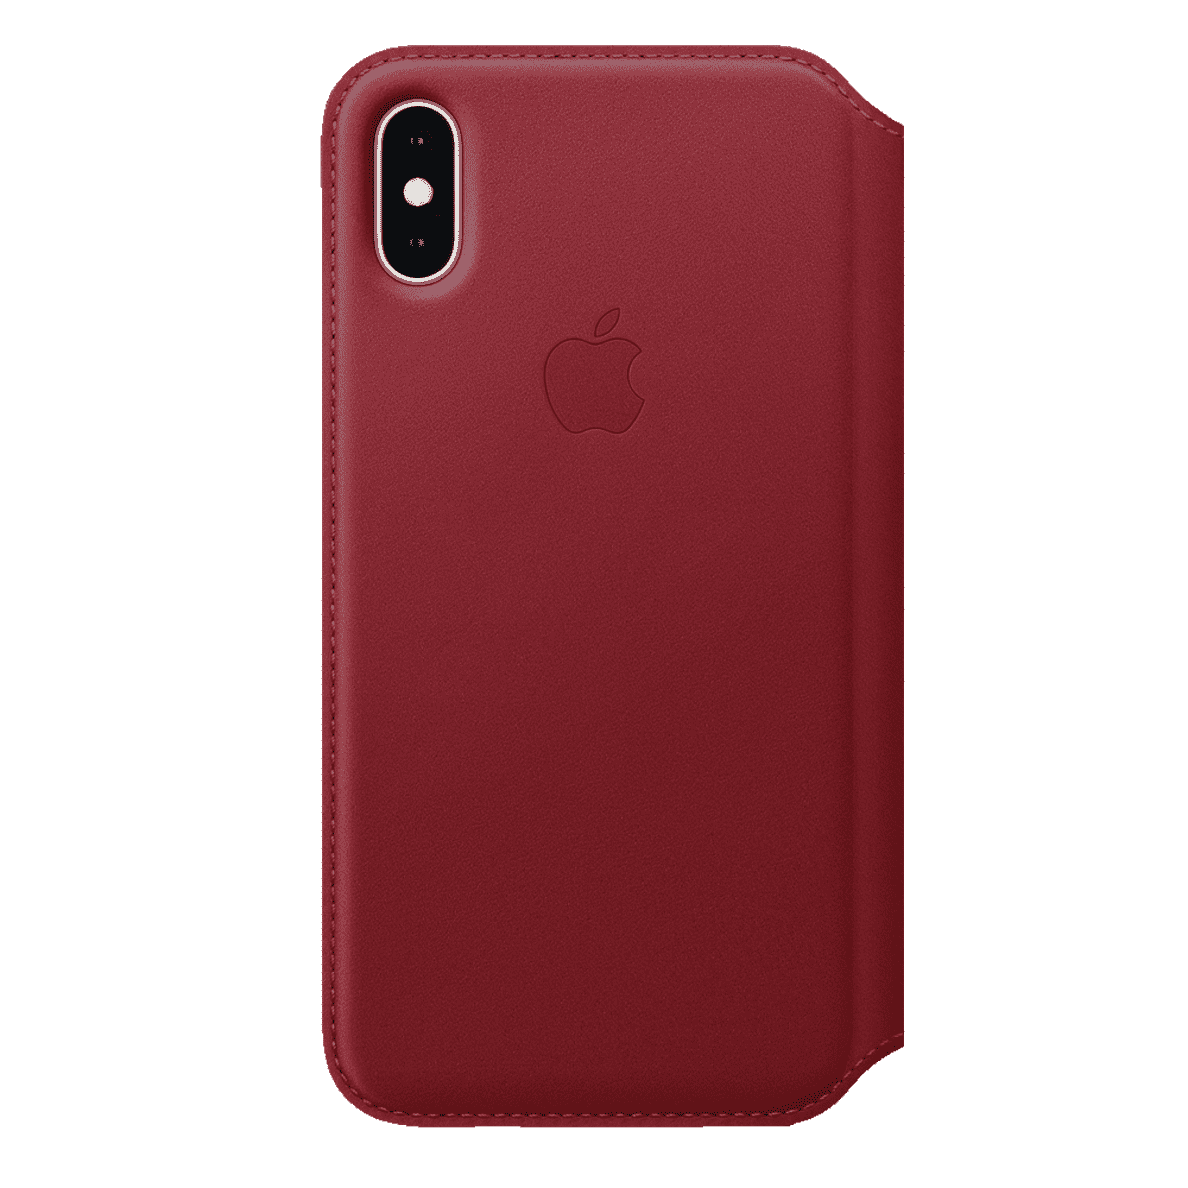 APPLE XS Leder Folio Handyhülle, Rot, passend für Apple iPhone